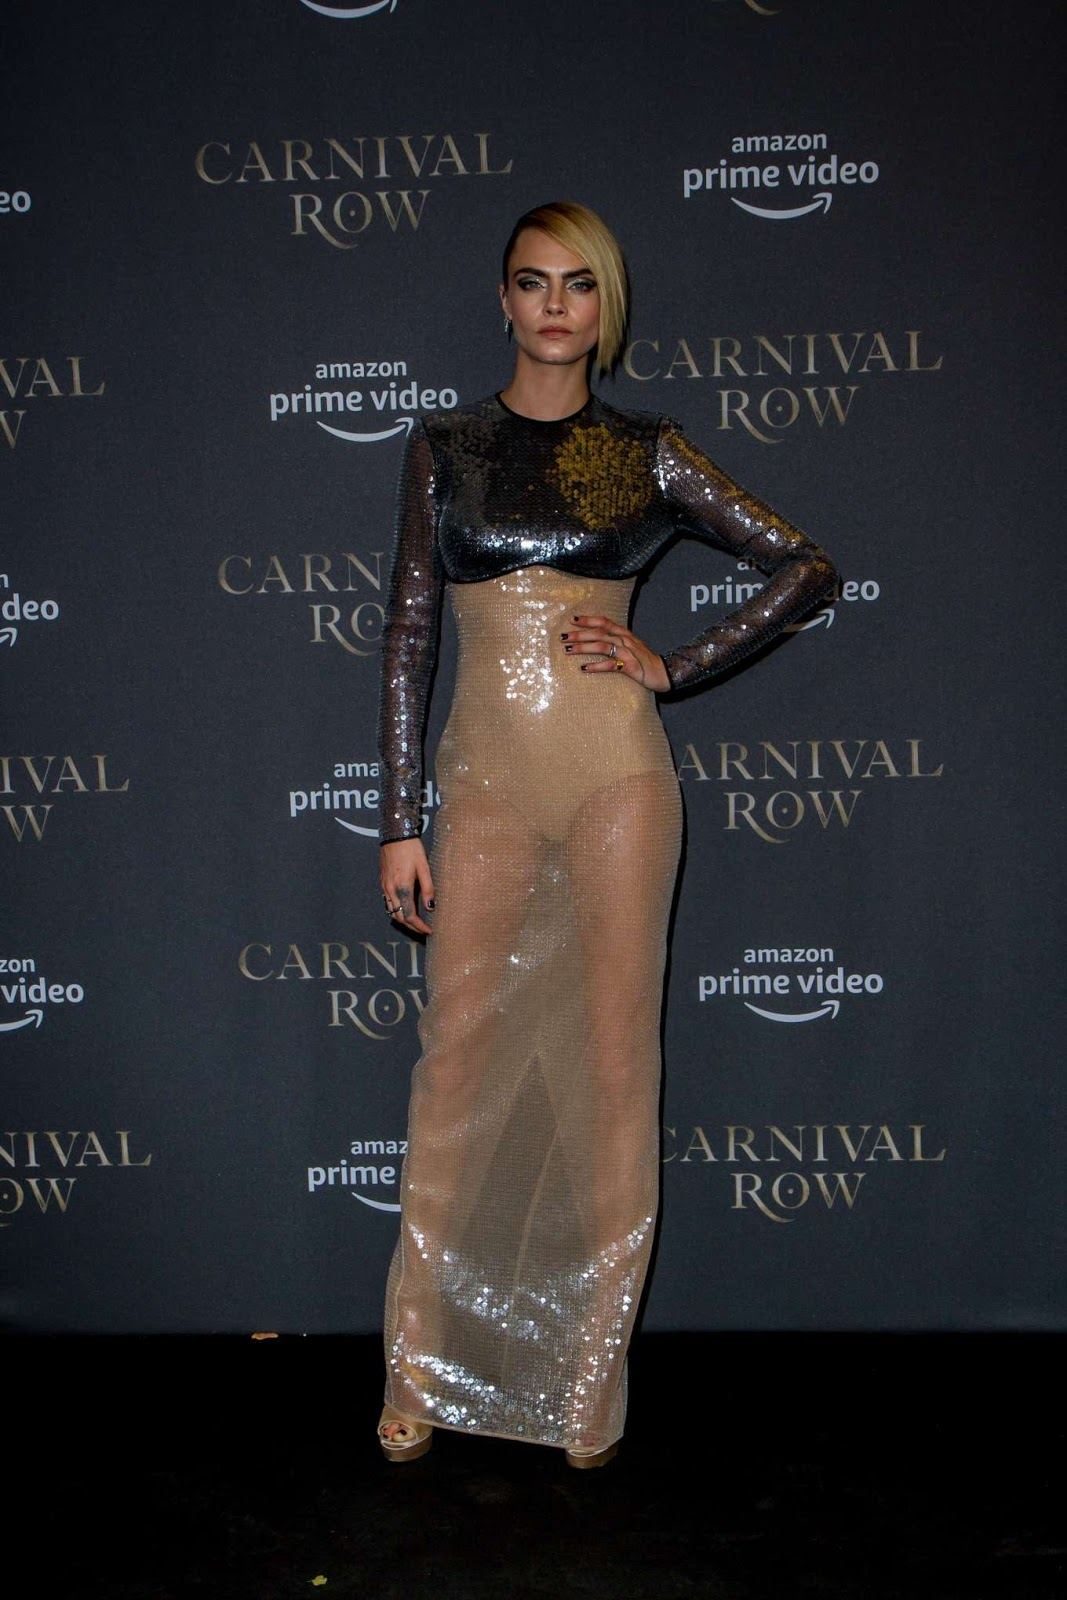 Cara Delevingne dazzles in sheer dress at the Carnival Row premiere in Berlin